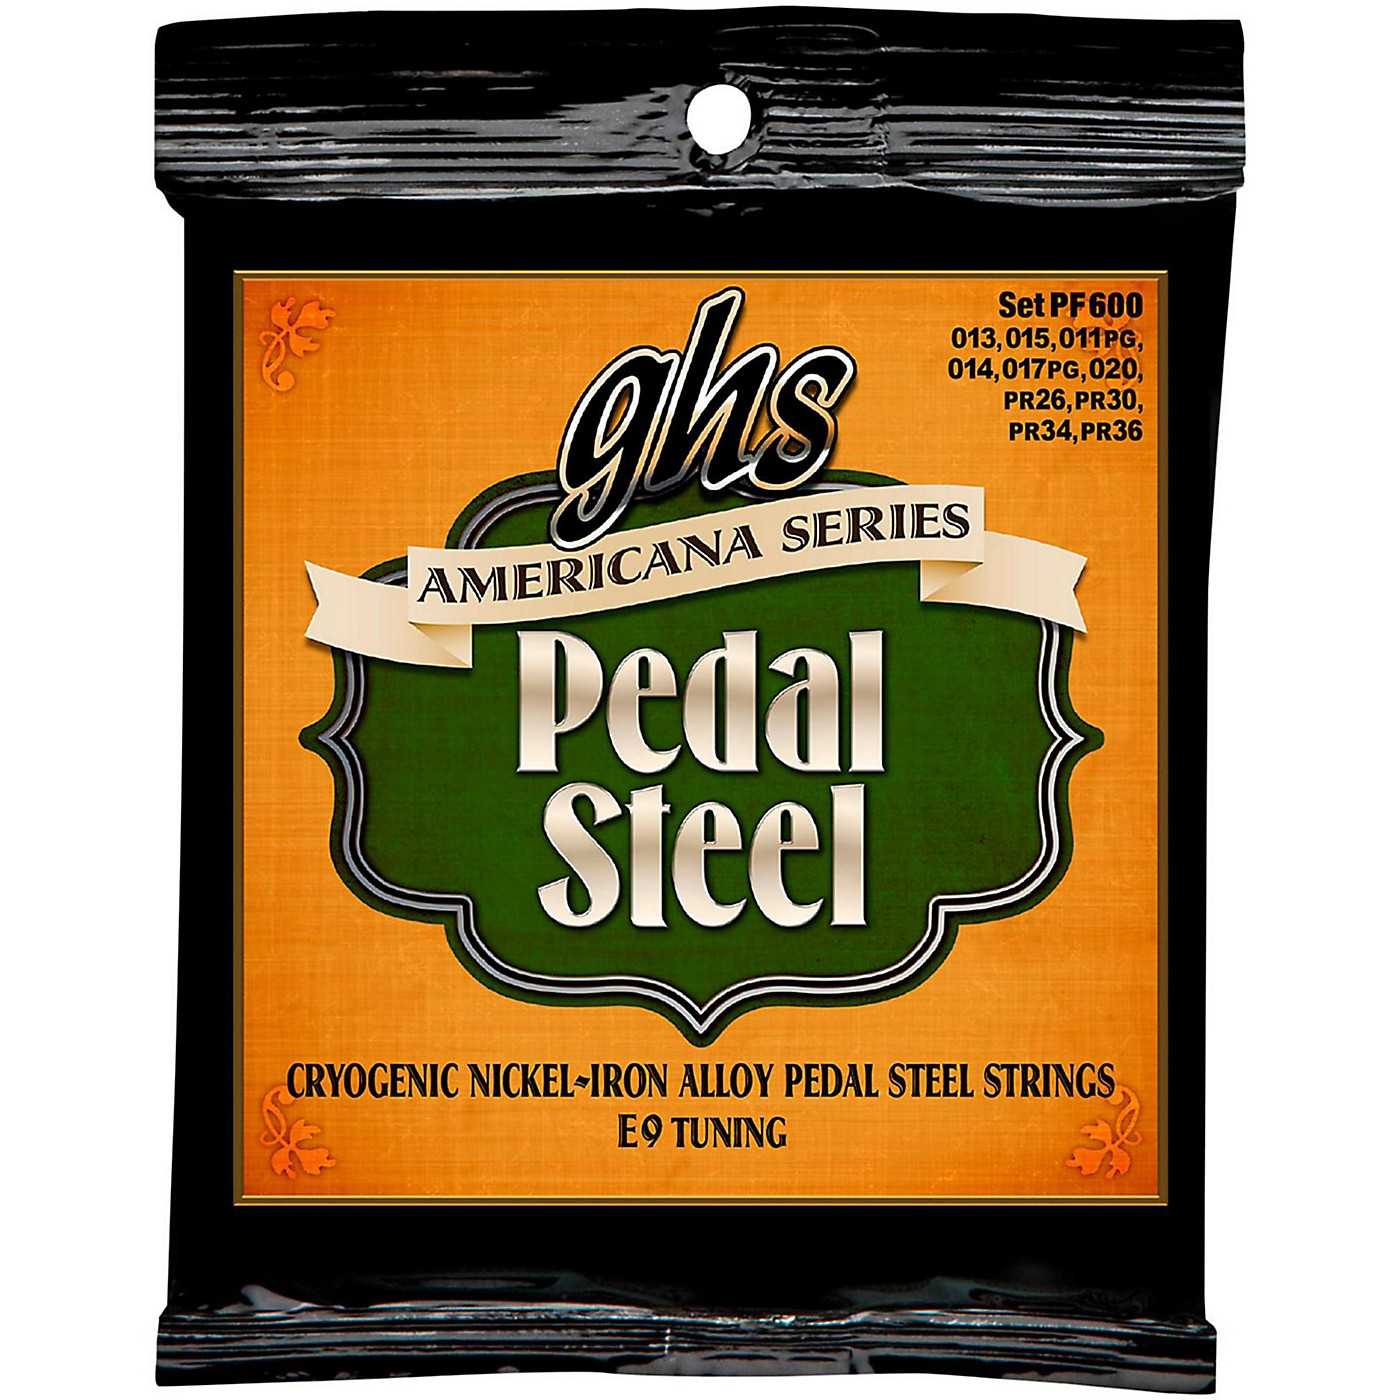 GHS Americana Pedal Steel Strings E9 Tuning (13-36) thumbnail